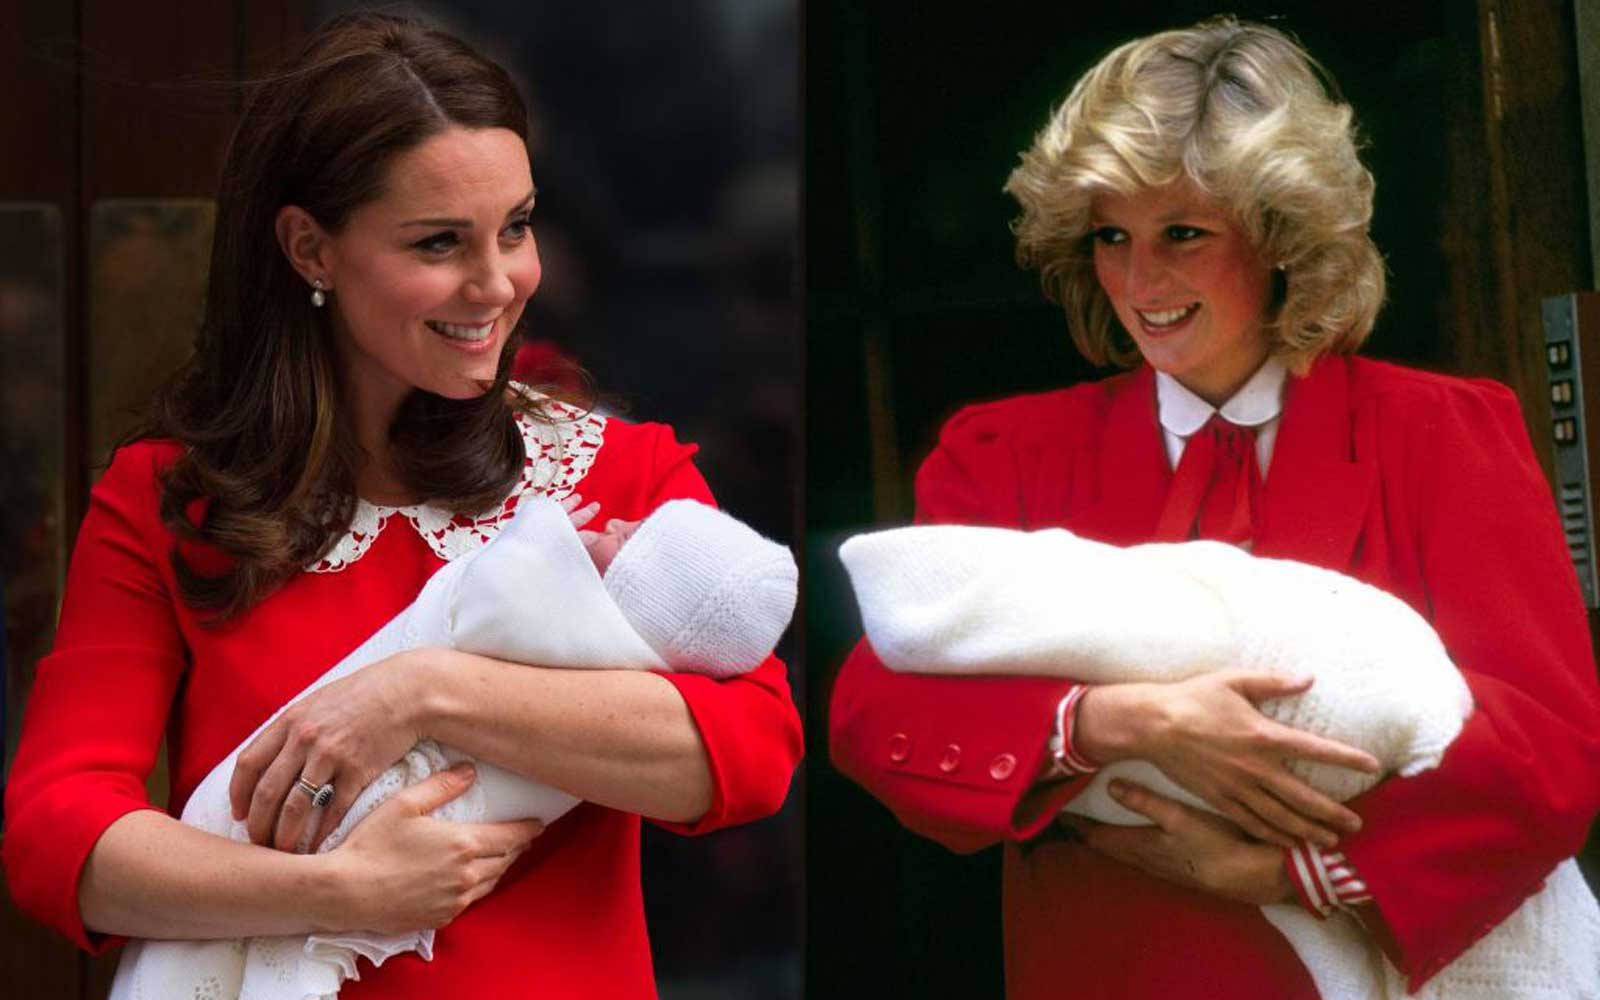 What Really Goes Into Choosing a Name for a Royal Baby (Video)